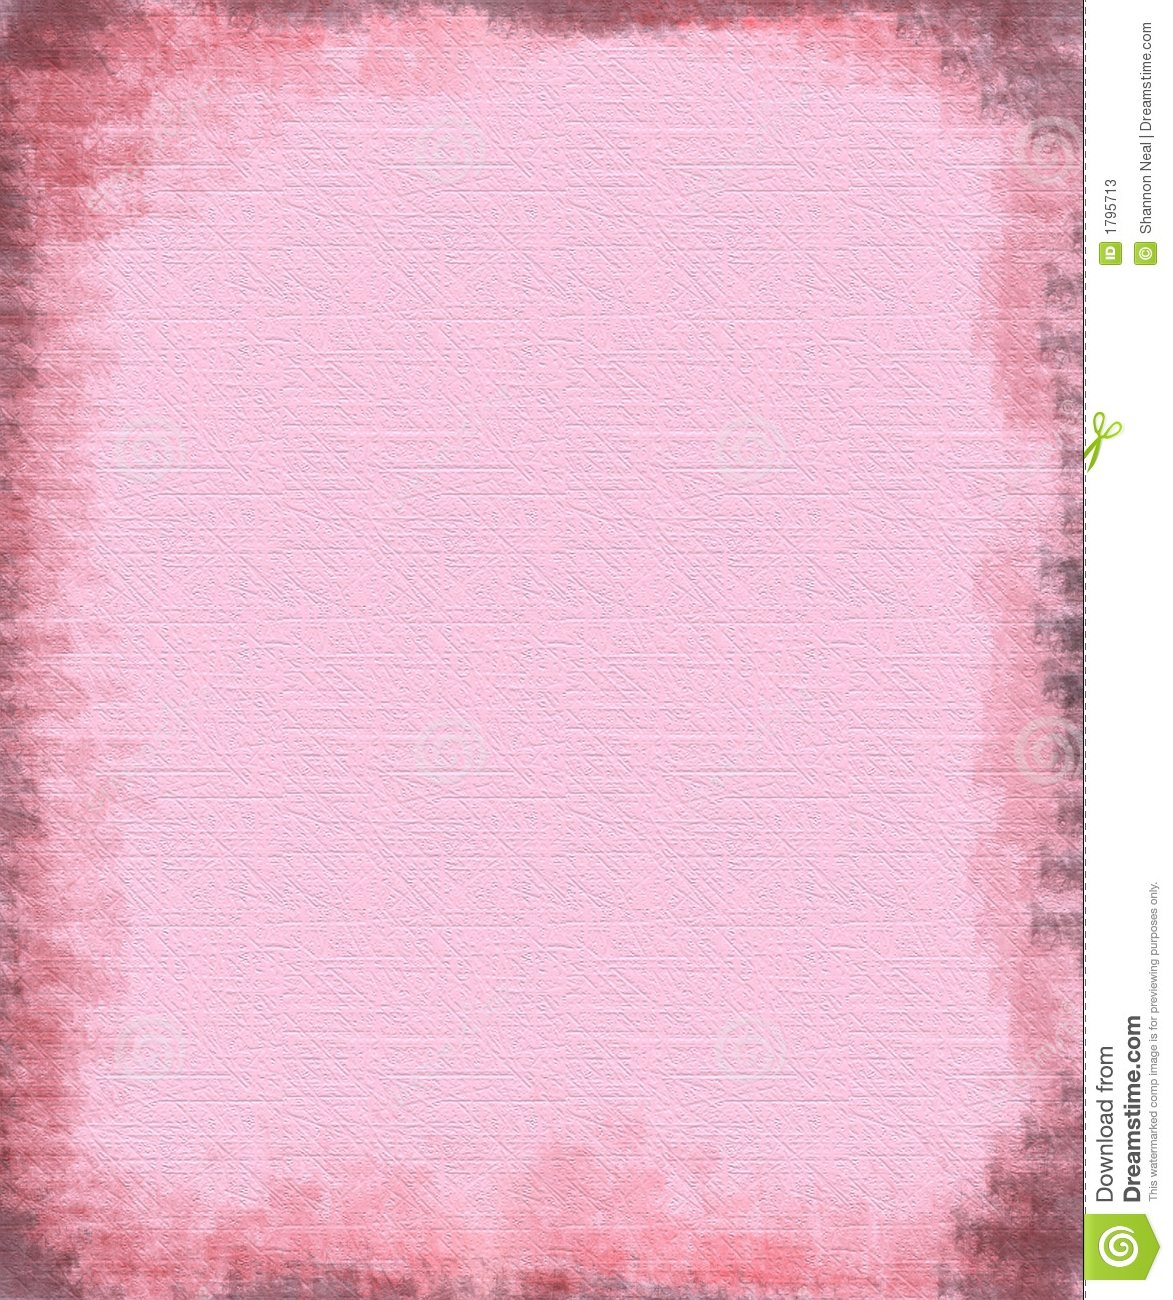 Pink Textured Background Paper Stock Photos - Image: 1795713